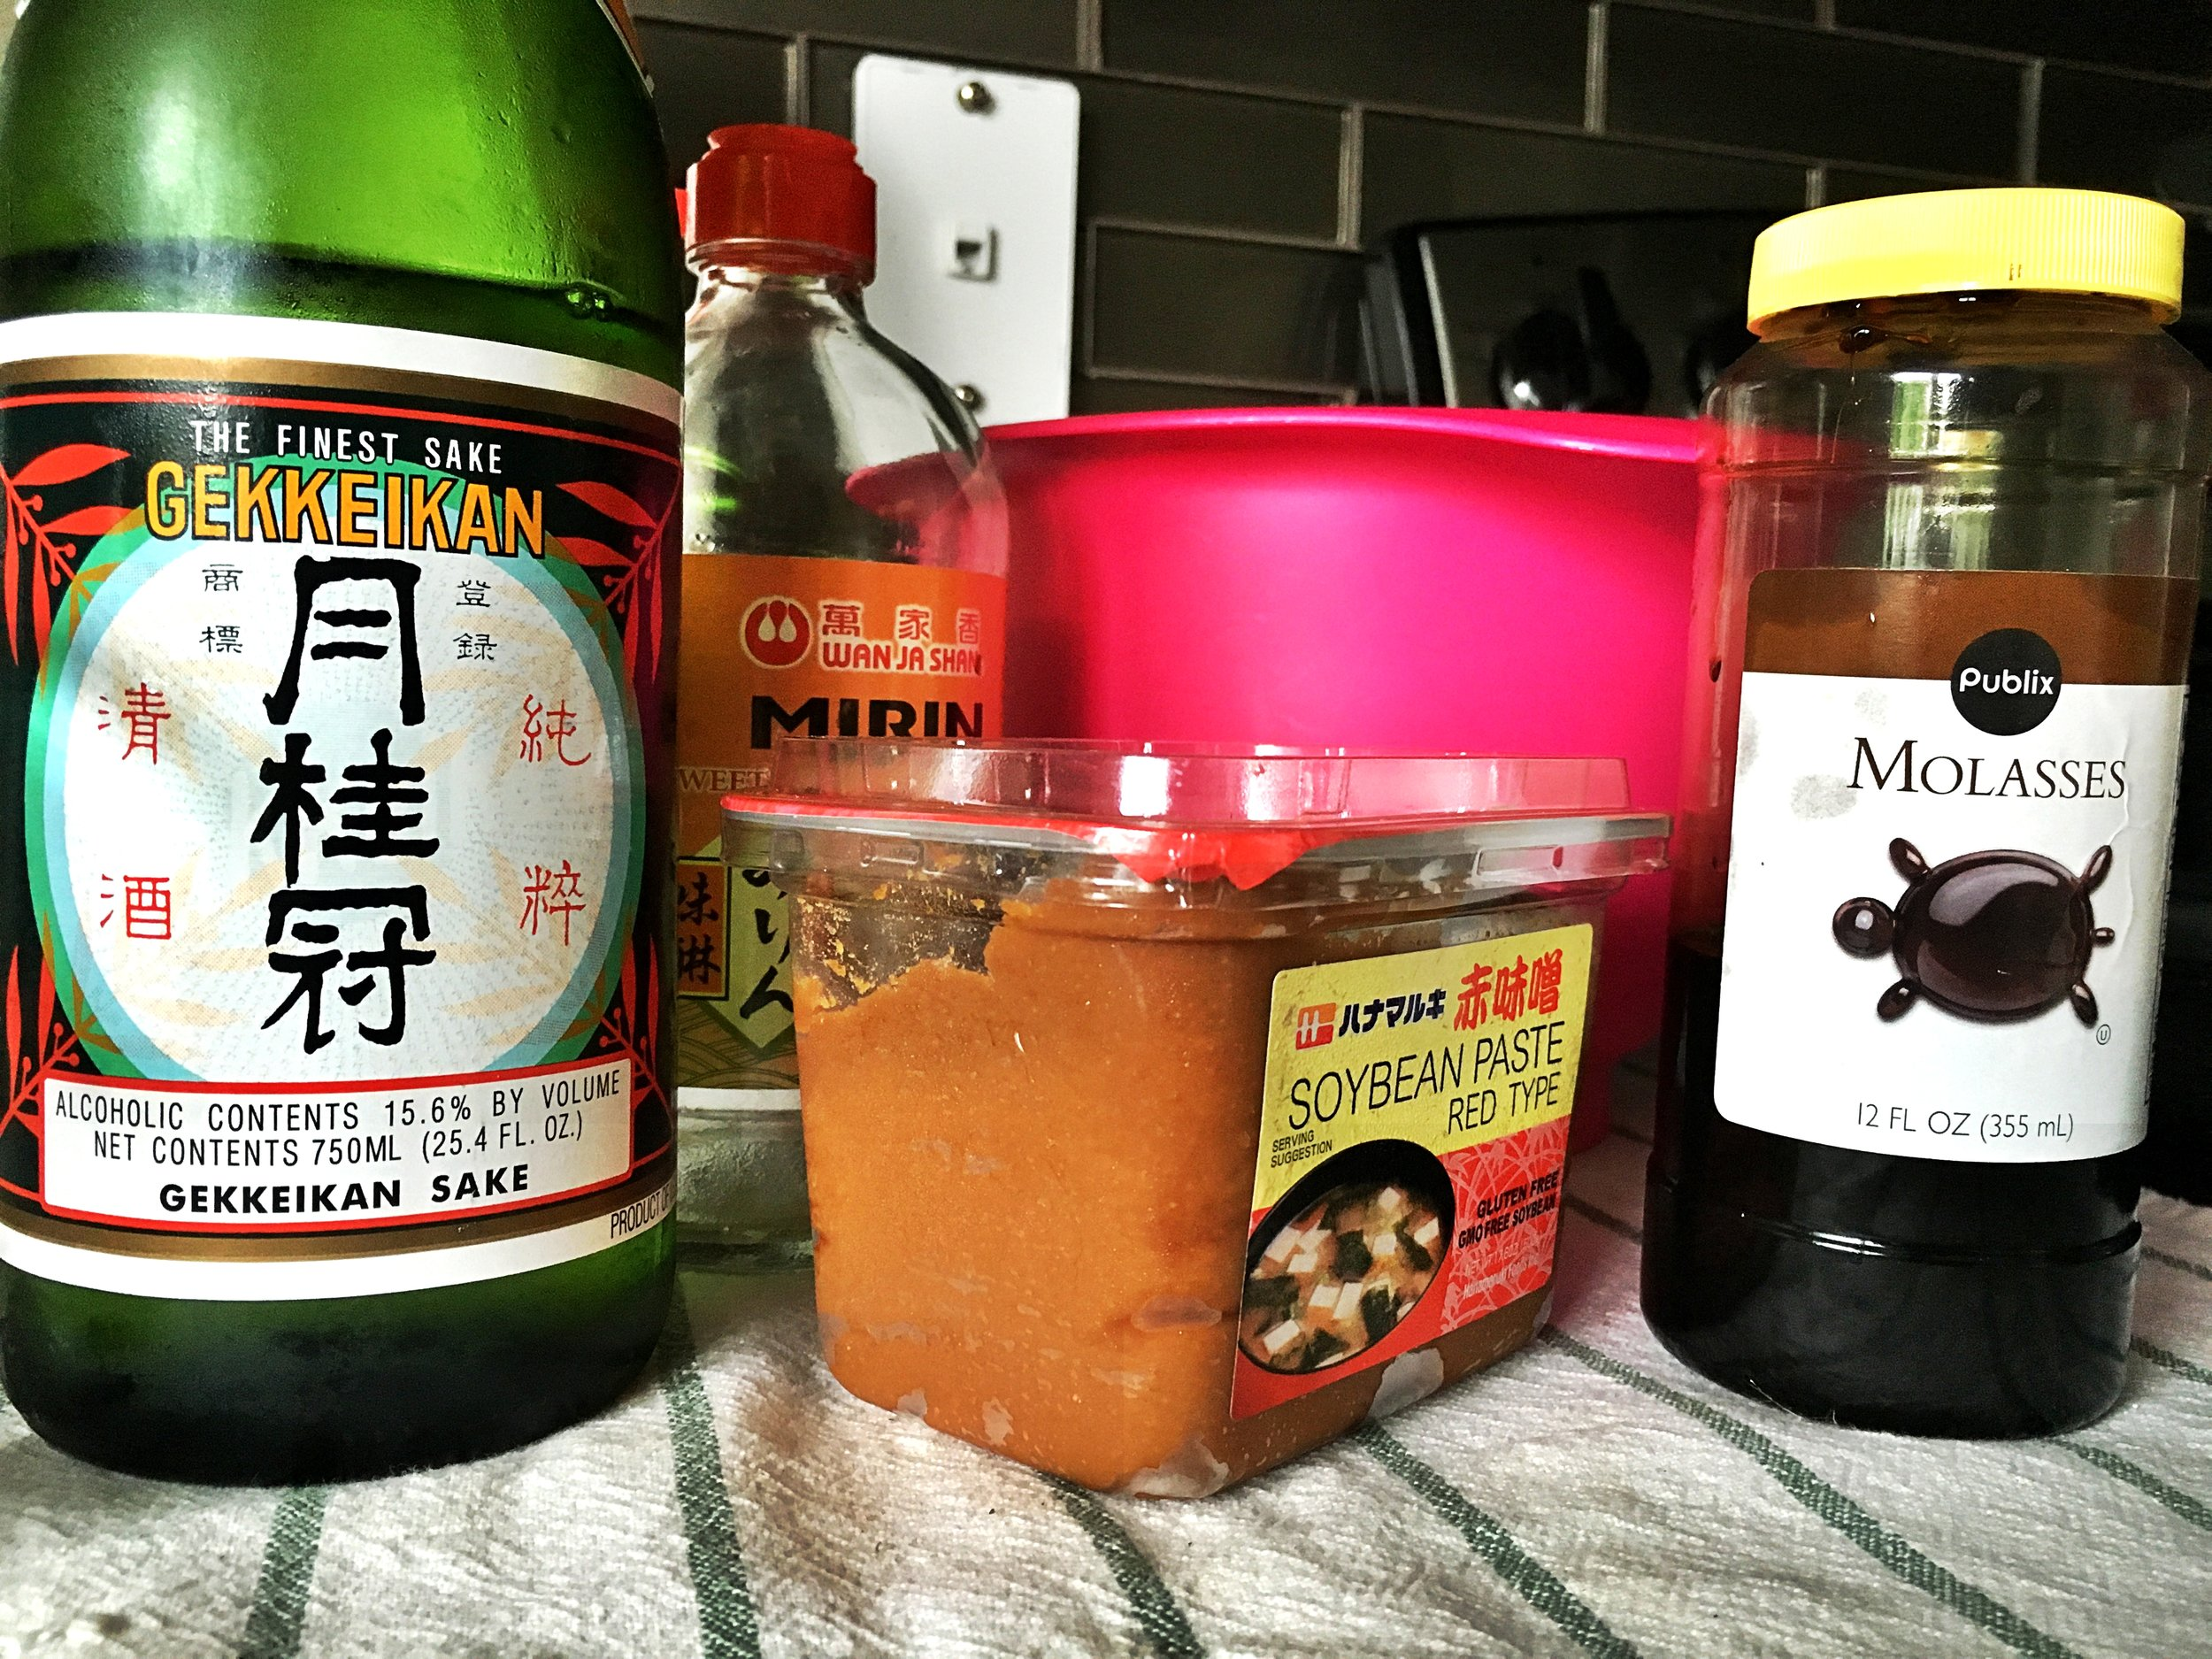 Sake and miso as marinade for Pork. Pretty good I must say.